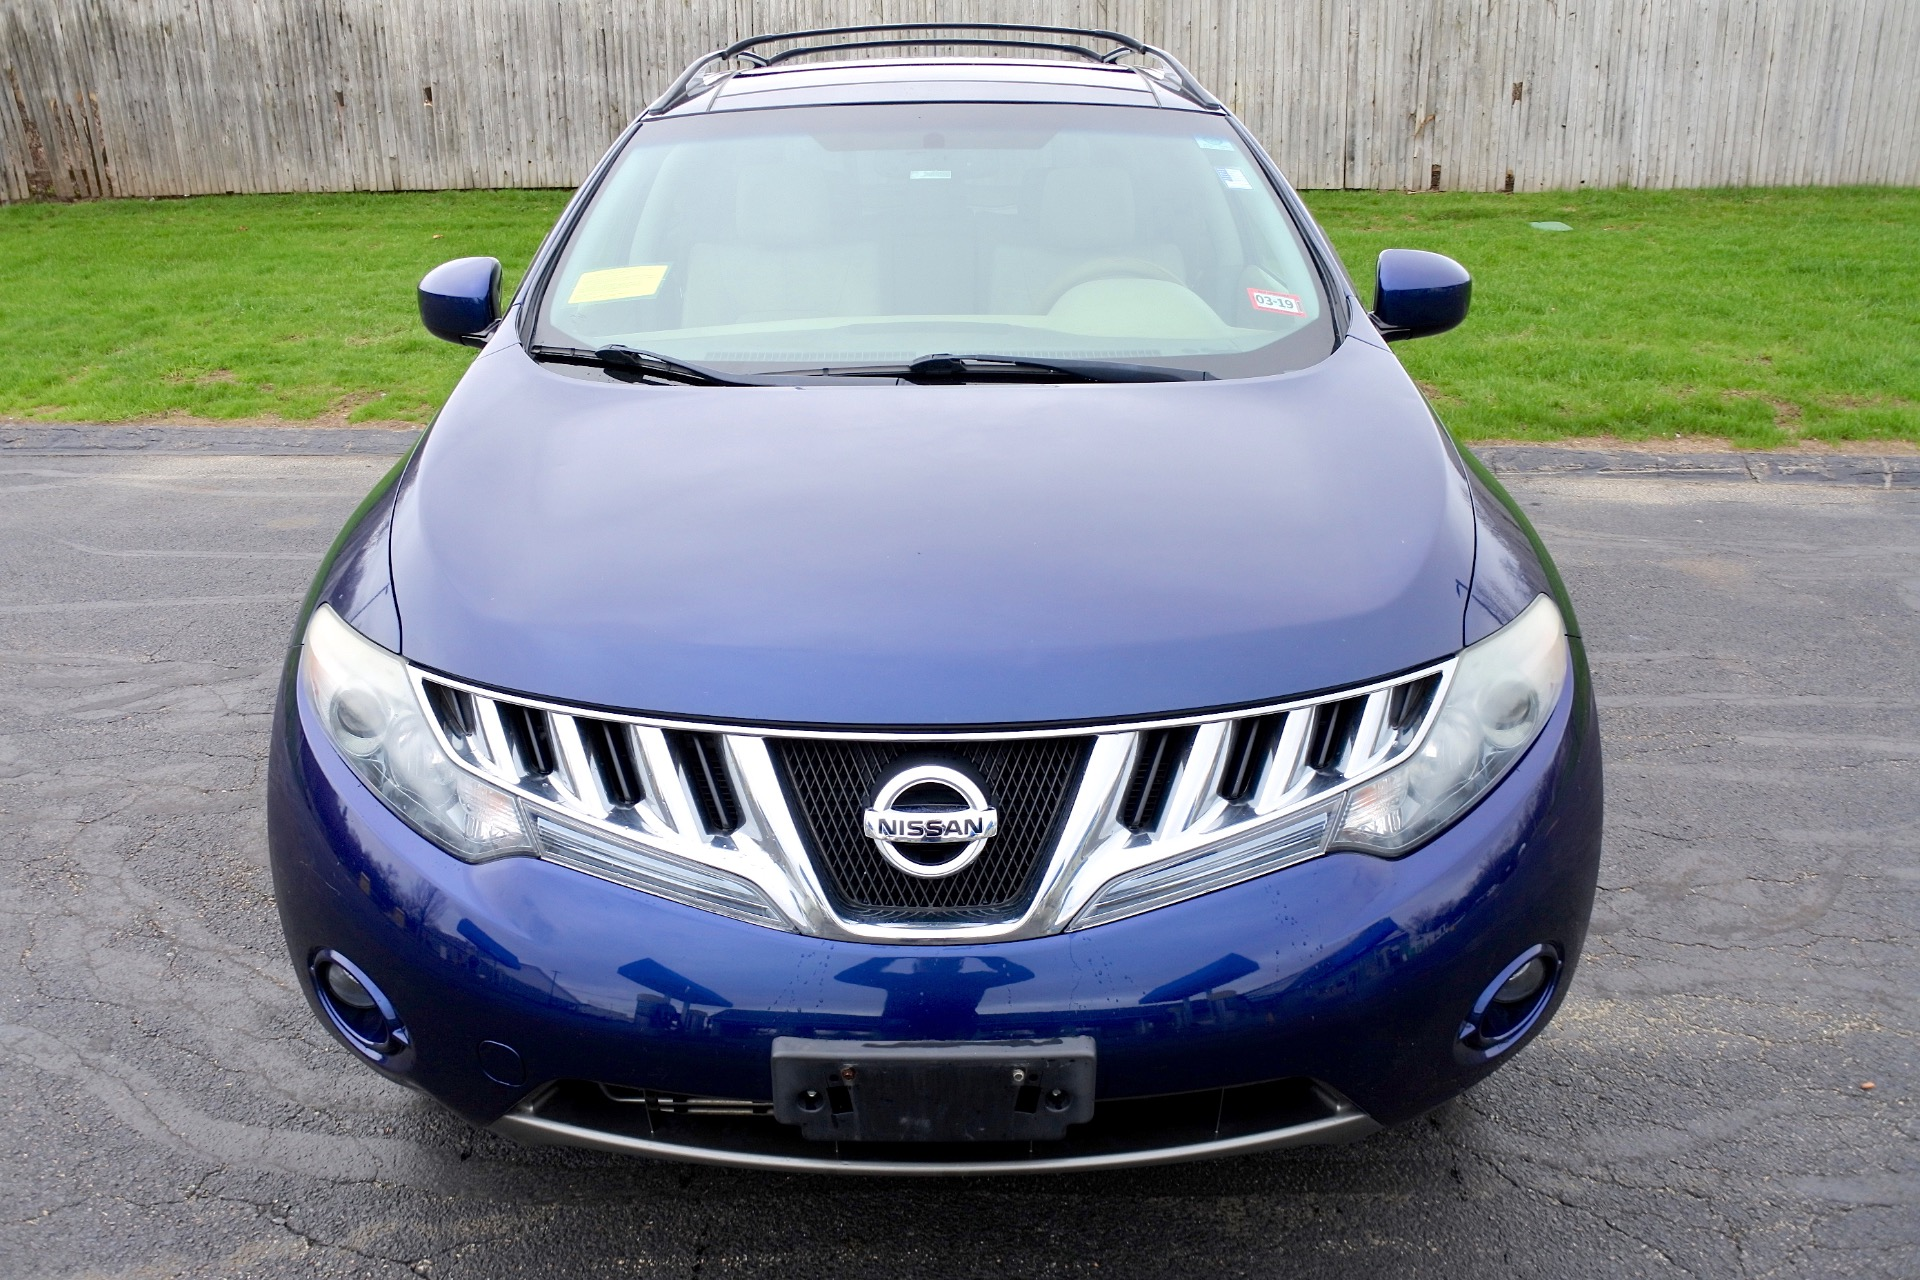 Used 2010 Nissan Murano AWD 4dr SL Used 2010 Nissan Murano AWD 4dr SL for sale  at Metro West Motorcars LLC in Shrewsbury MA 8